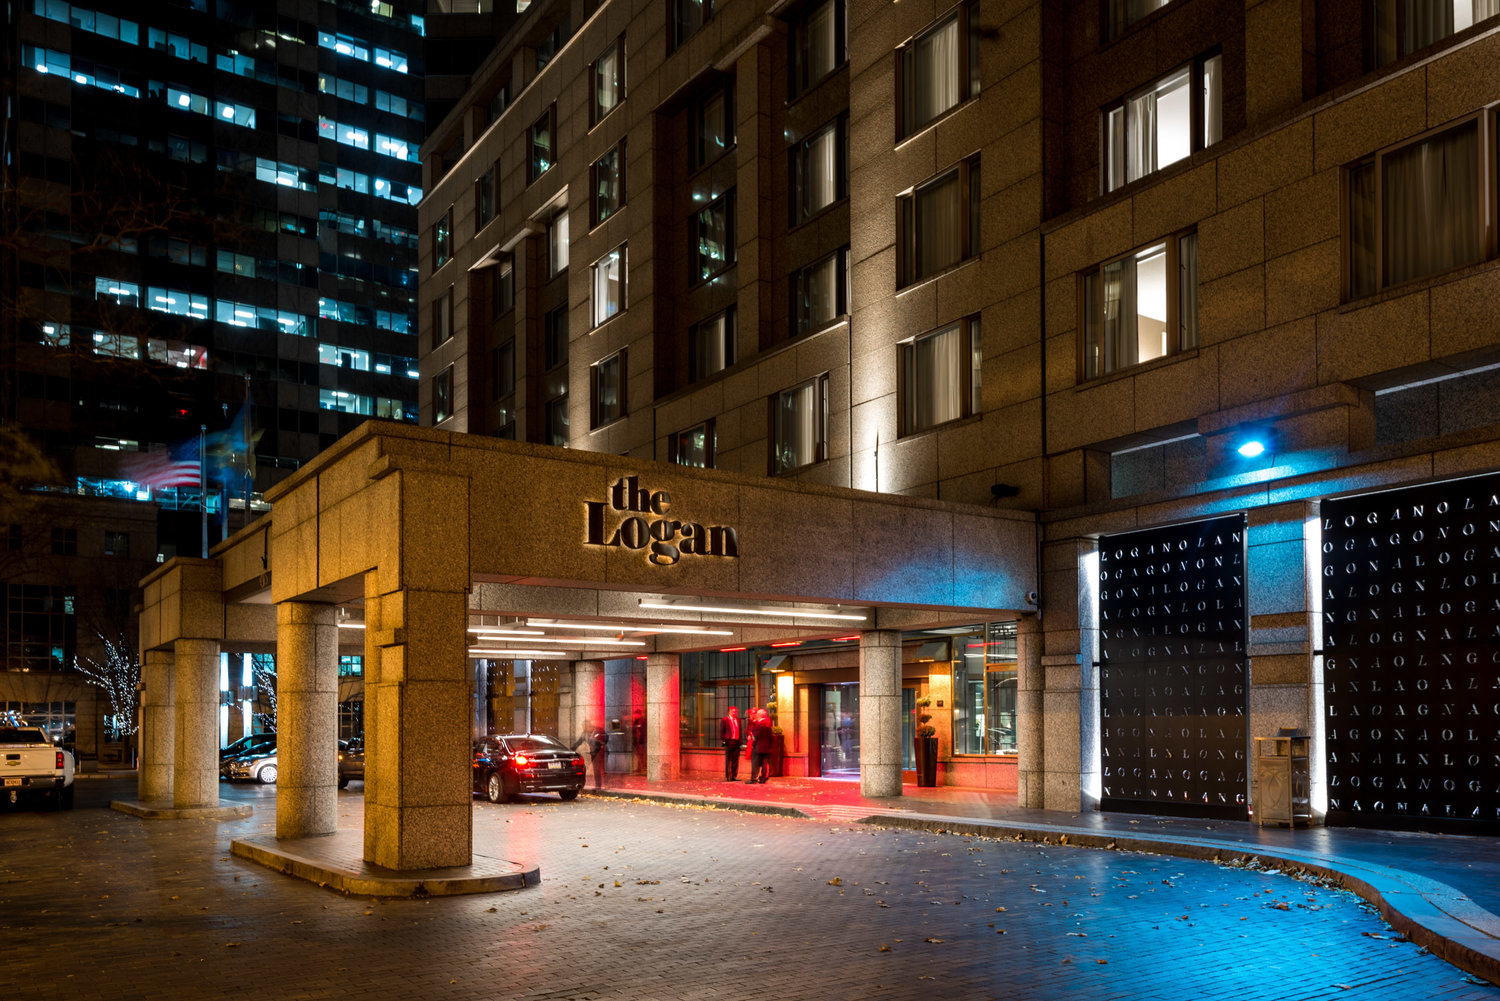 The logan philadelphia a luxury hotel with a twist